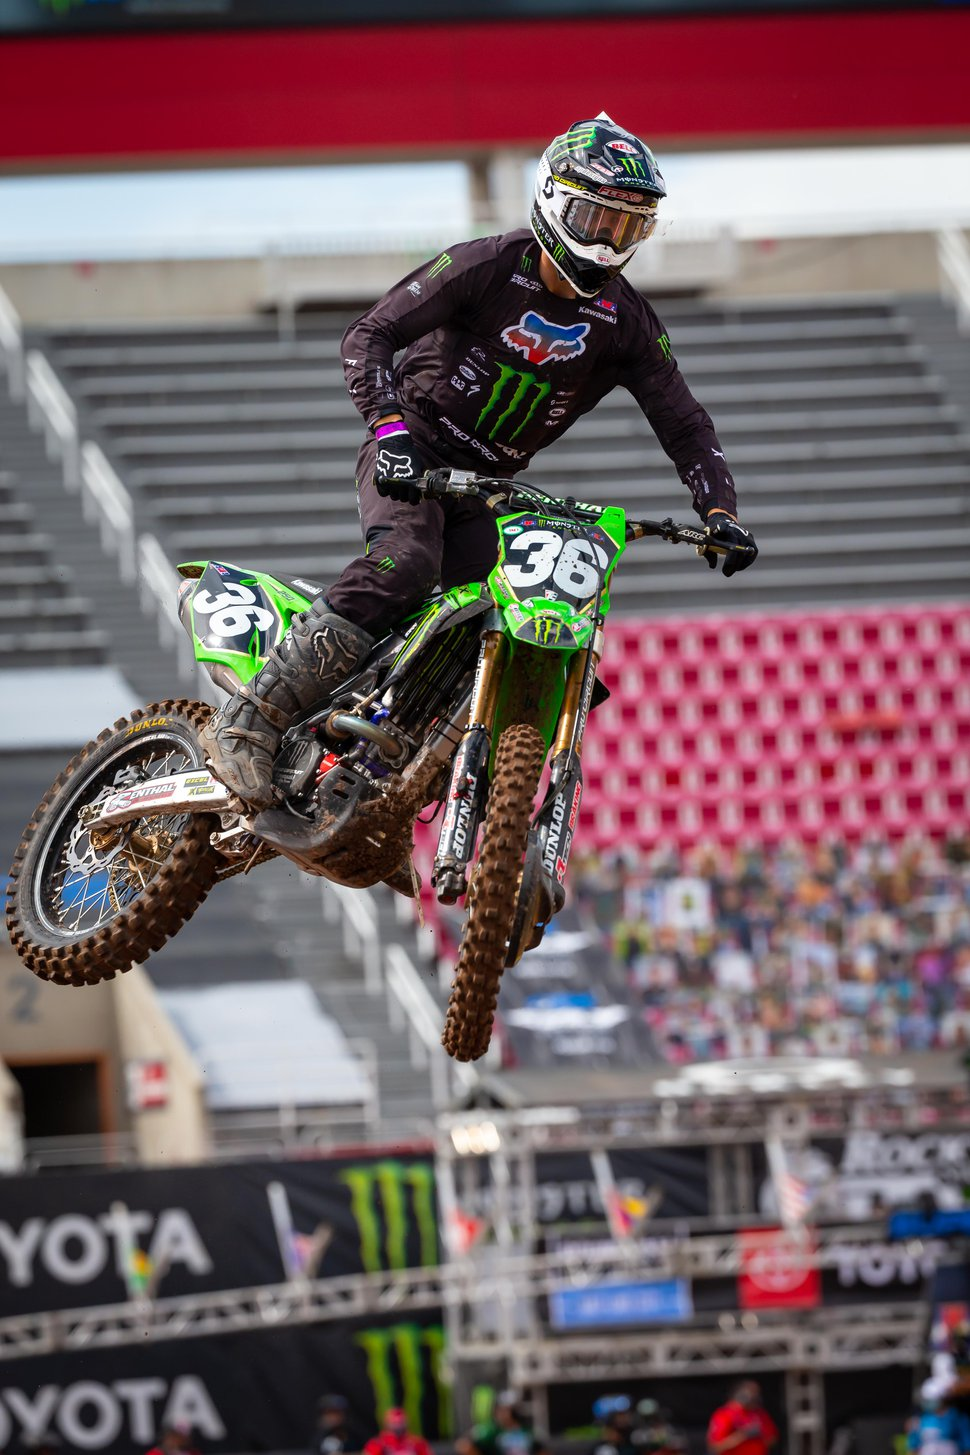 Feld Entertainment Global Public Relations (Feld Entertainment) Coalville's Garrett Marchbanks rides to a third-place finish in the 250cc class during Sunday's Supercross races at Rice-Eccles Stadium in Salt Lake City.